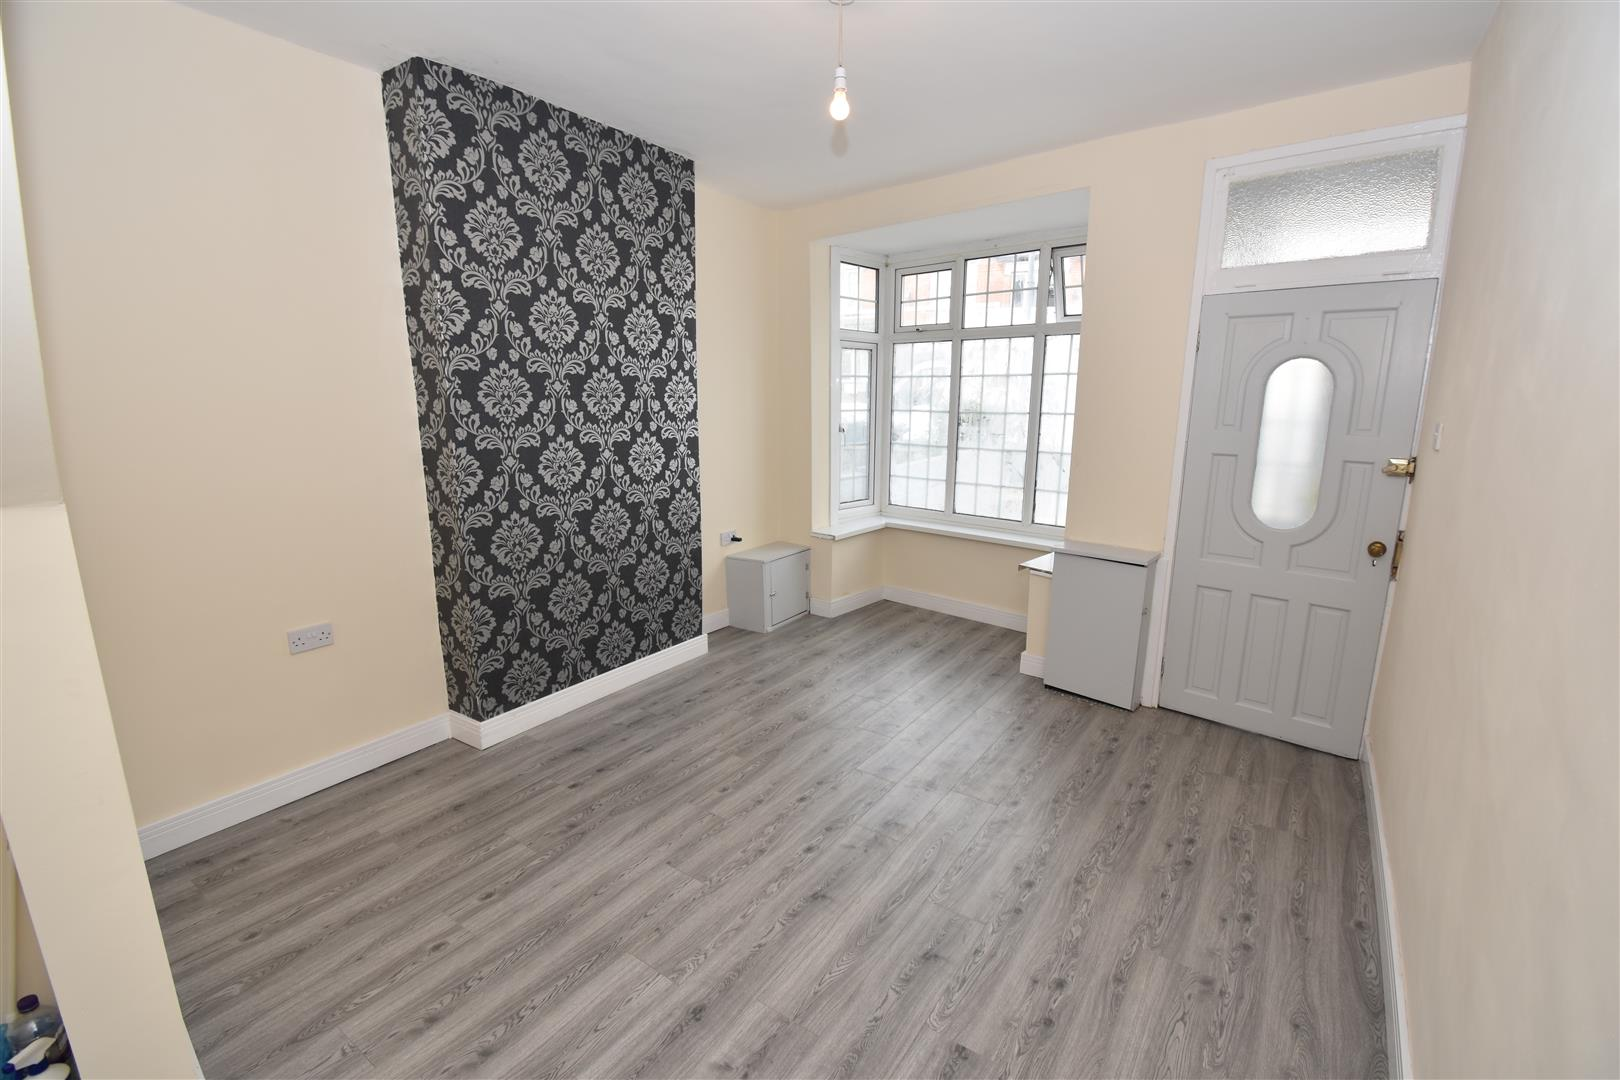 3 bed house for sale in Asquith Road, Ward End, Birmingham 2